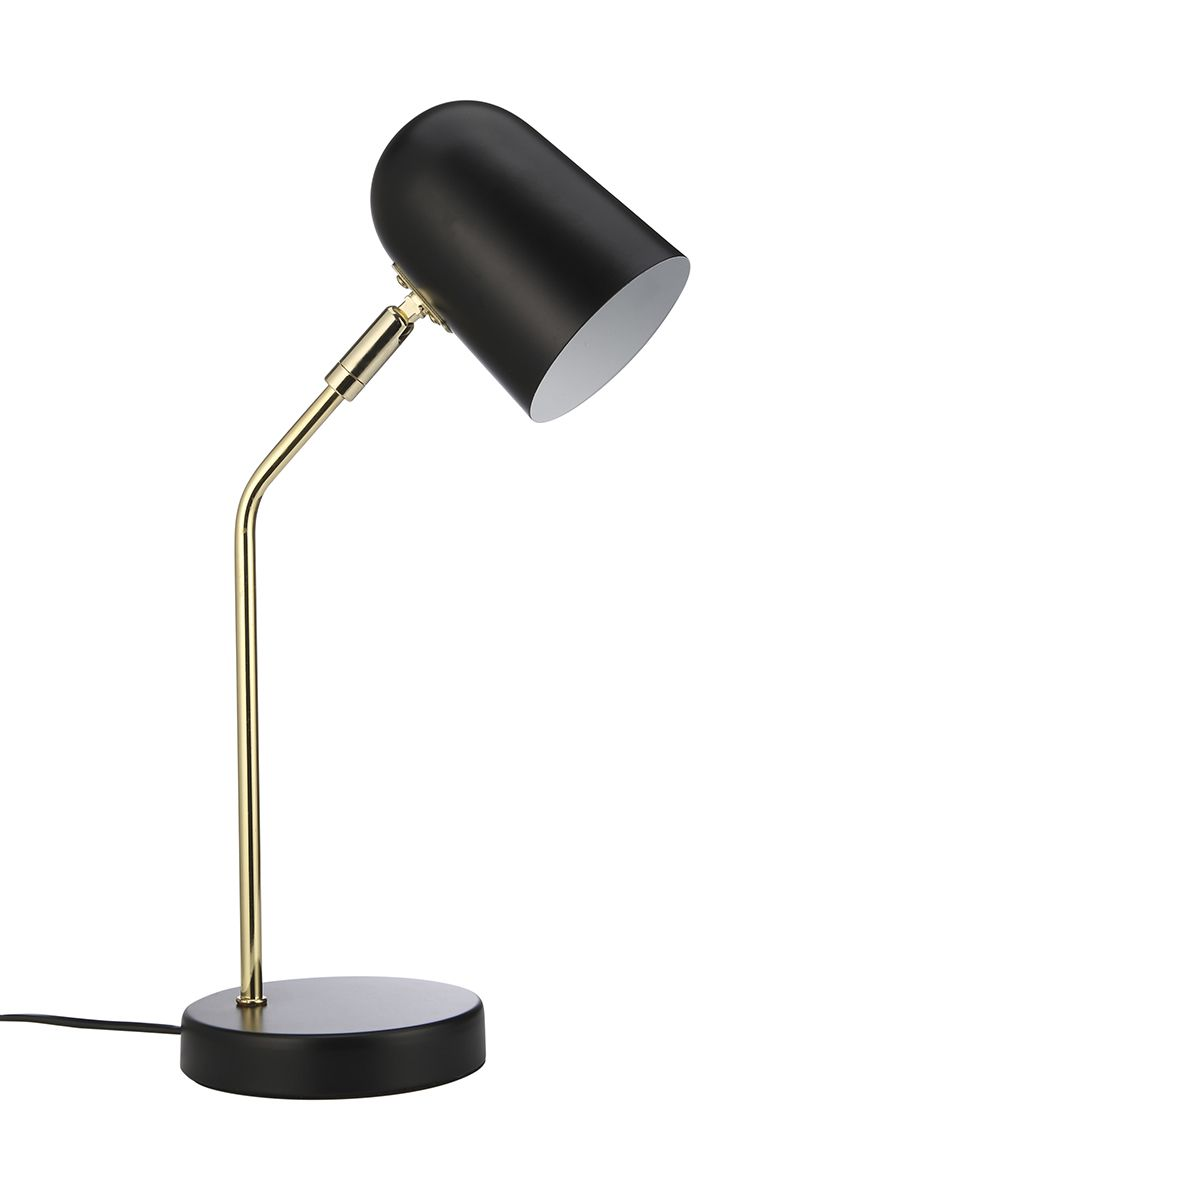 Black Gold Desk Lamp Kmart Gold Desk Lamps Gold Desk Lamp